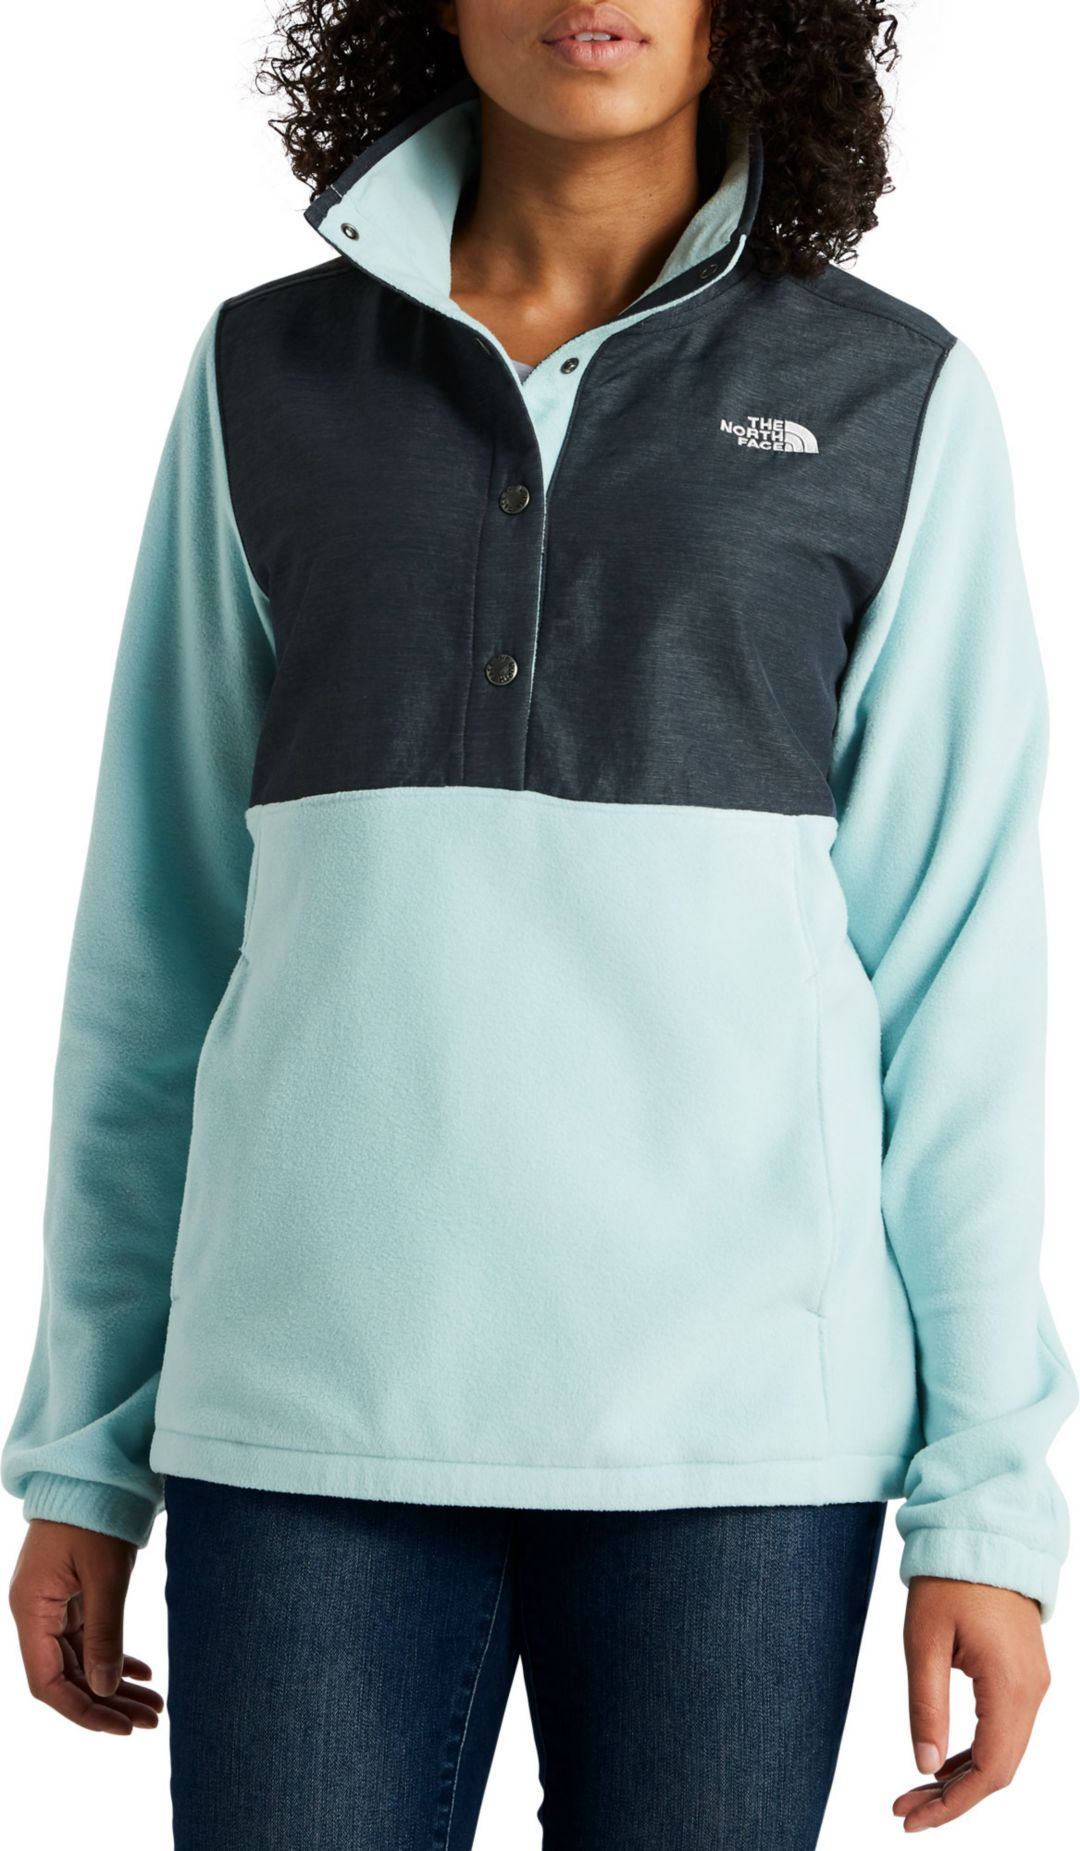 fd31d3816 The North Face Women's Snap It Fleece Pullover